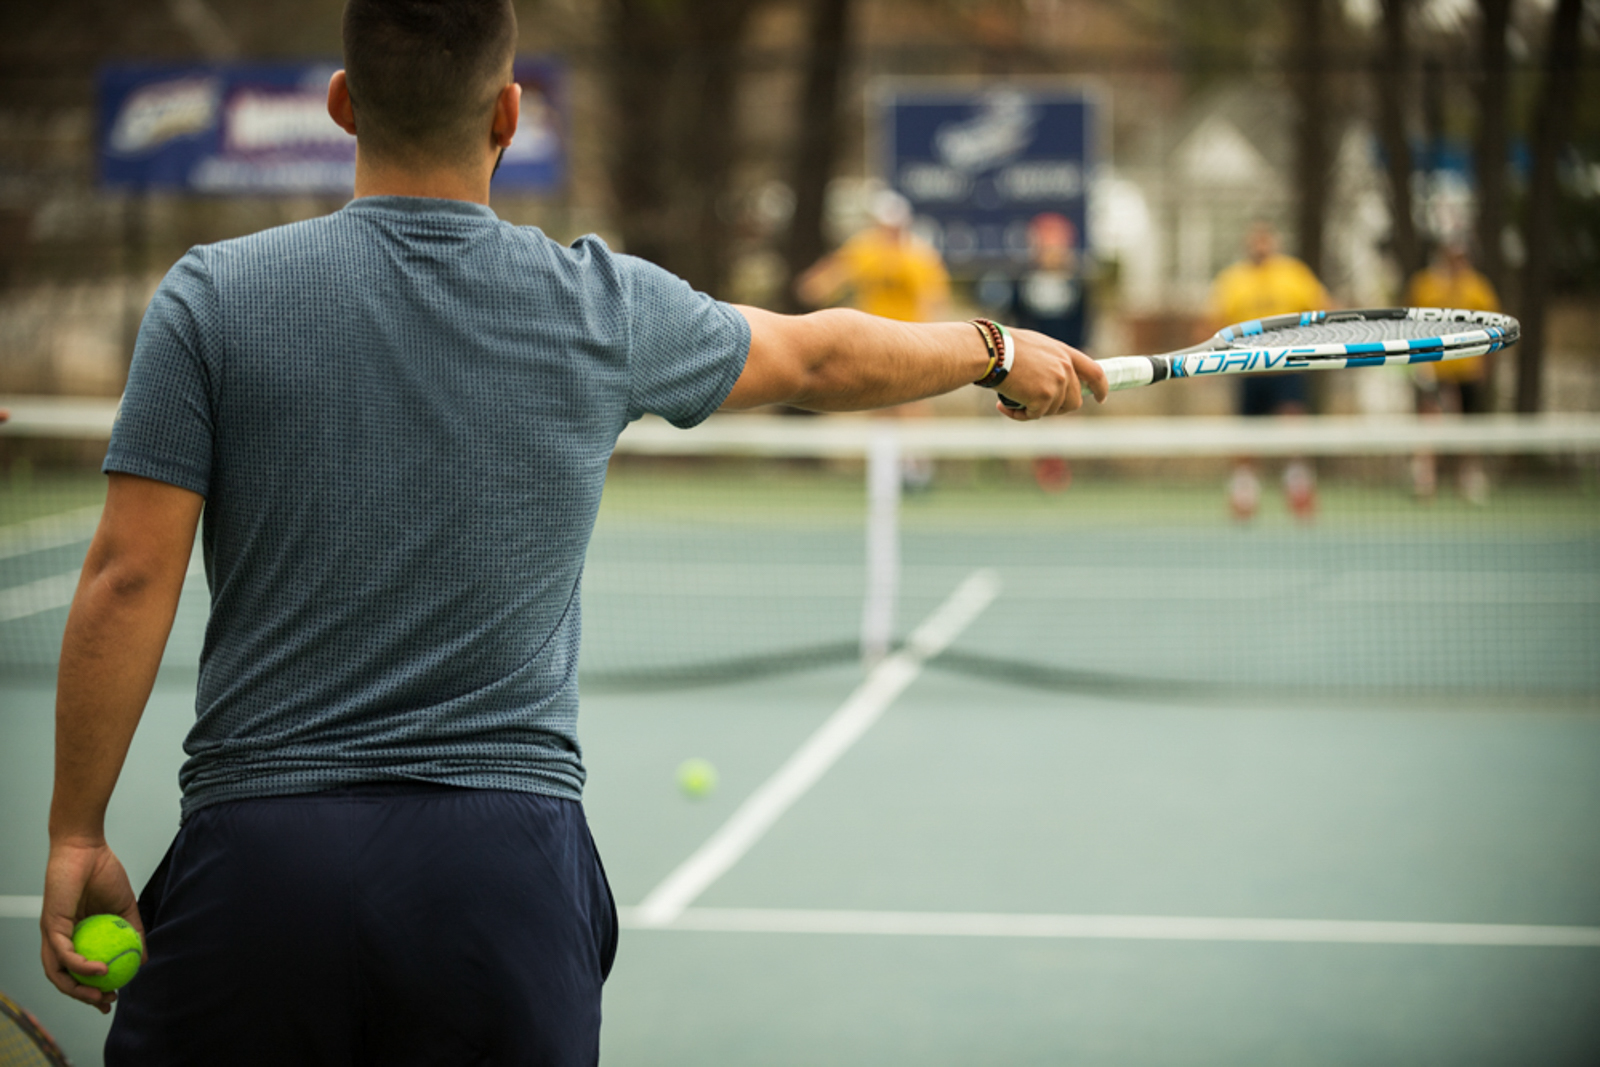 Student playing tennis outdoors, seen from behind